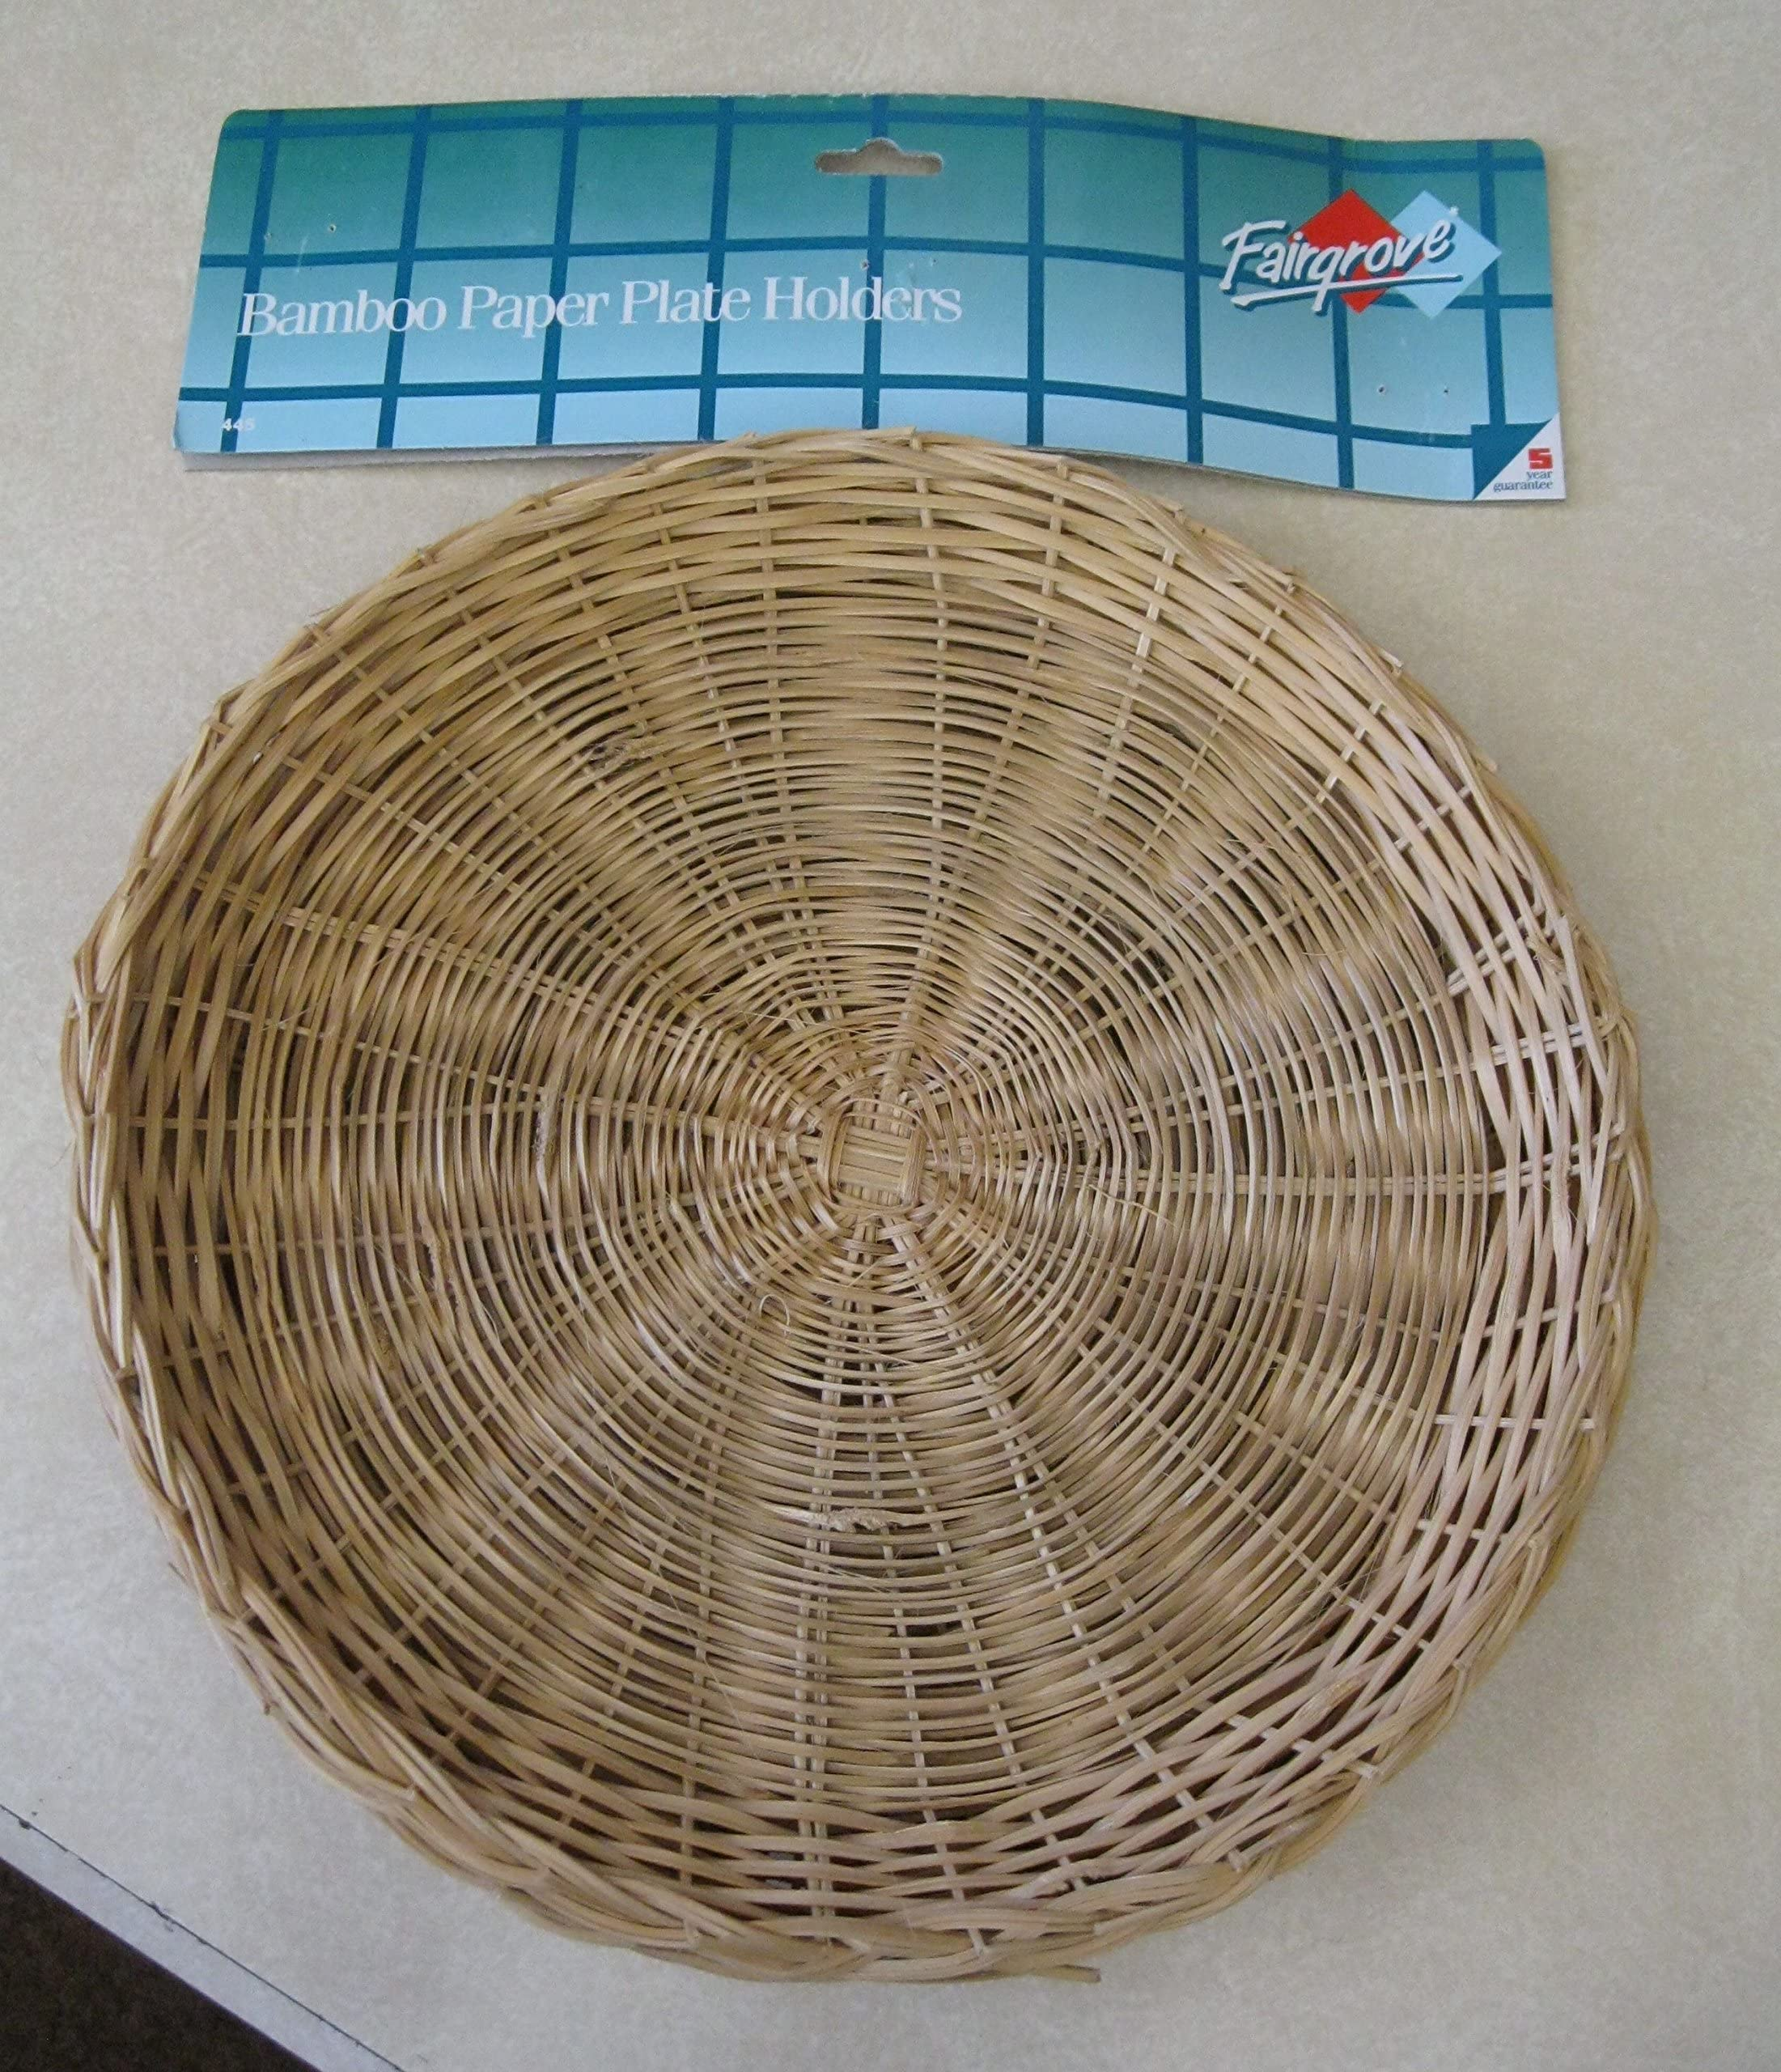 Bamboo Paper Plate Holders Set of 4 & Shop Amazon.com Vertical Plate Holders